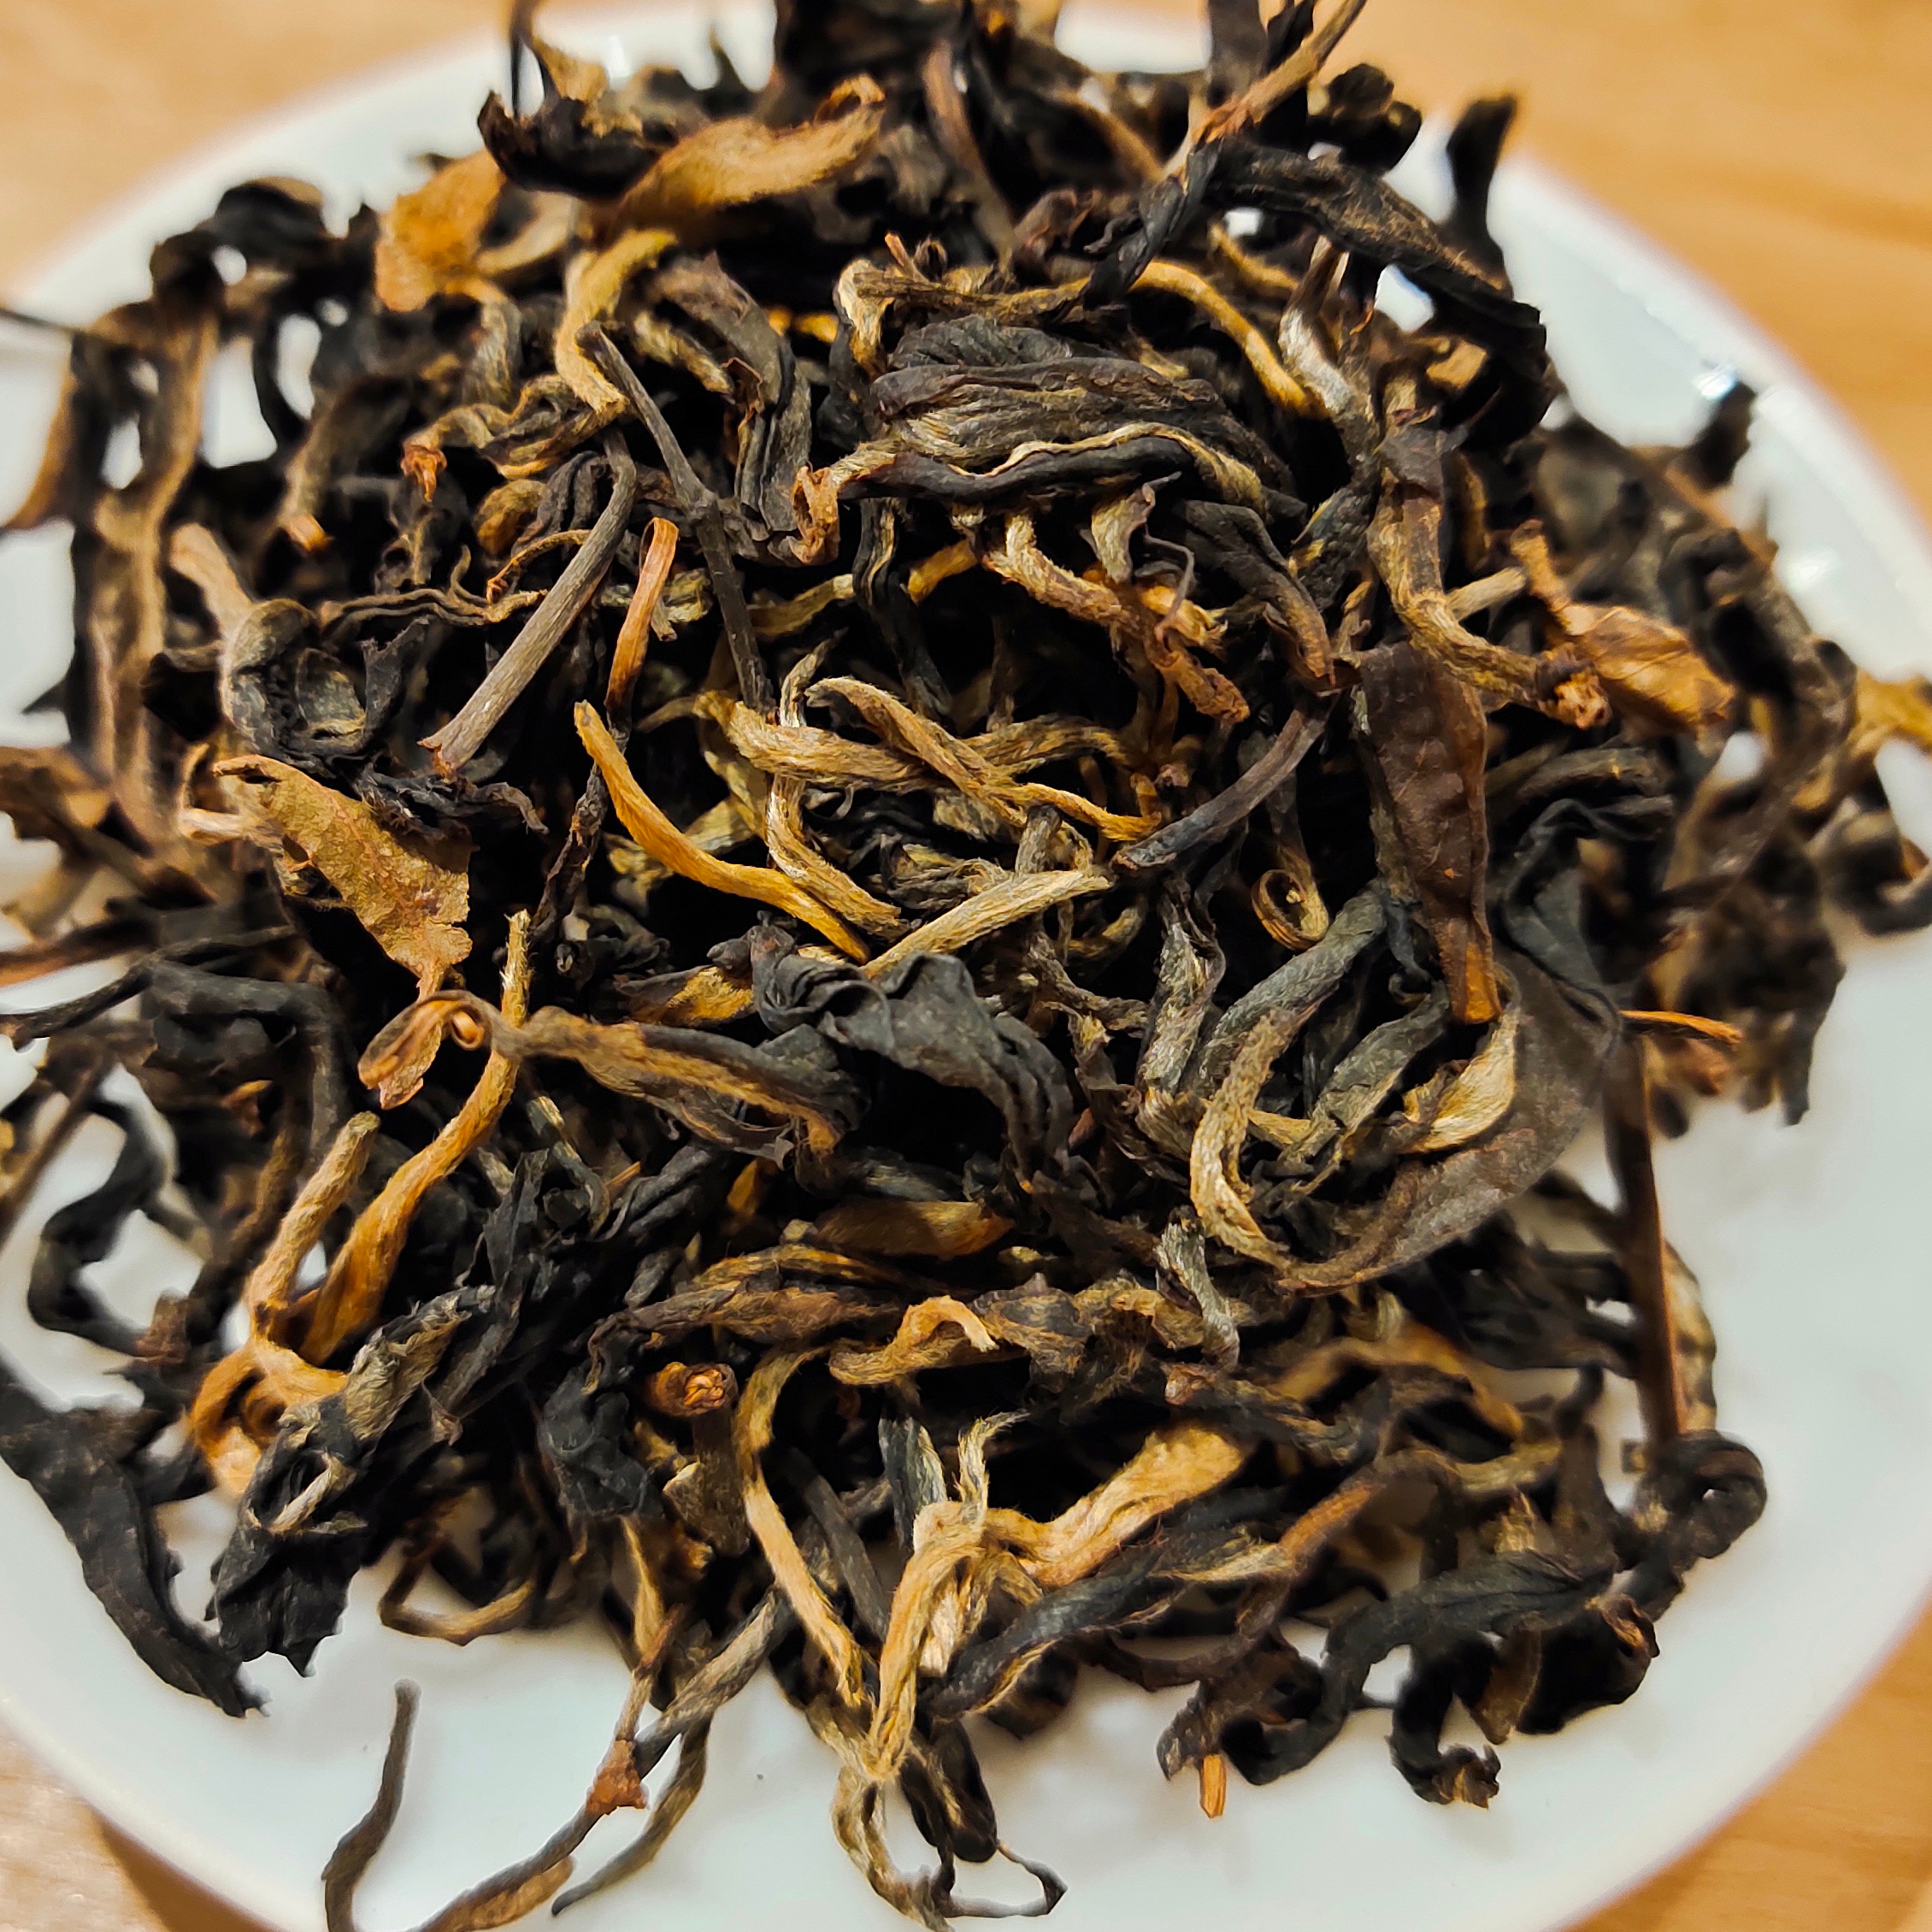 1000g Wholesale factory supplied healthy organic yunnan black tea - 4uTea | 4uTea.com